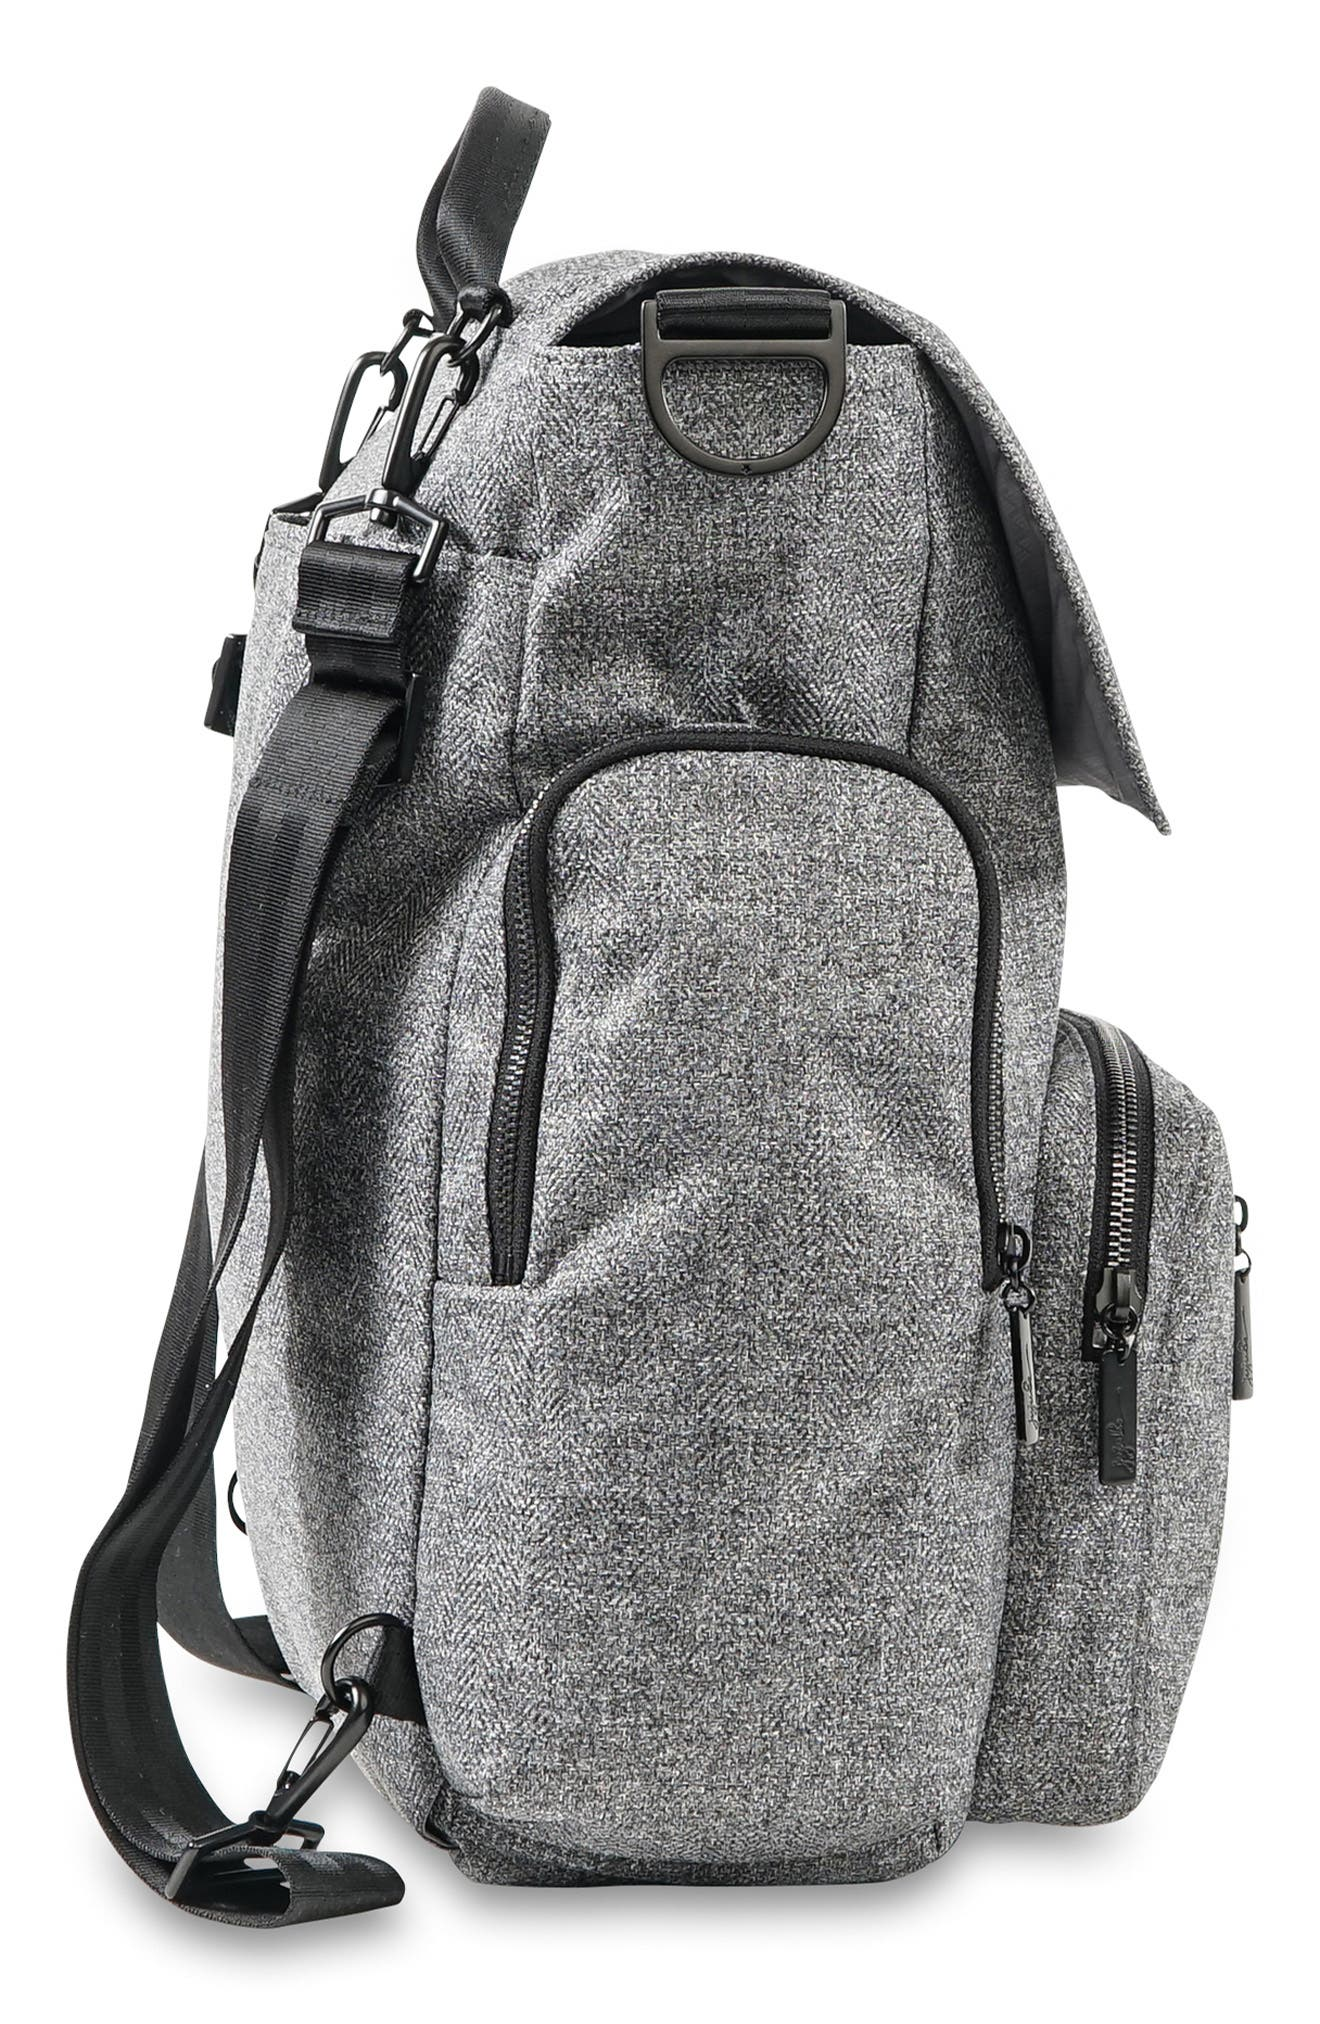 Onyx Be Sporty Diaper Backpack,                             Alternate thumbnail 3, color,                             035